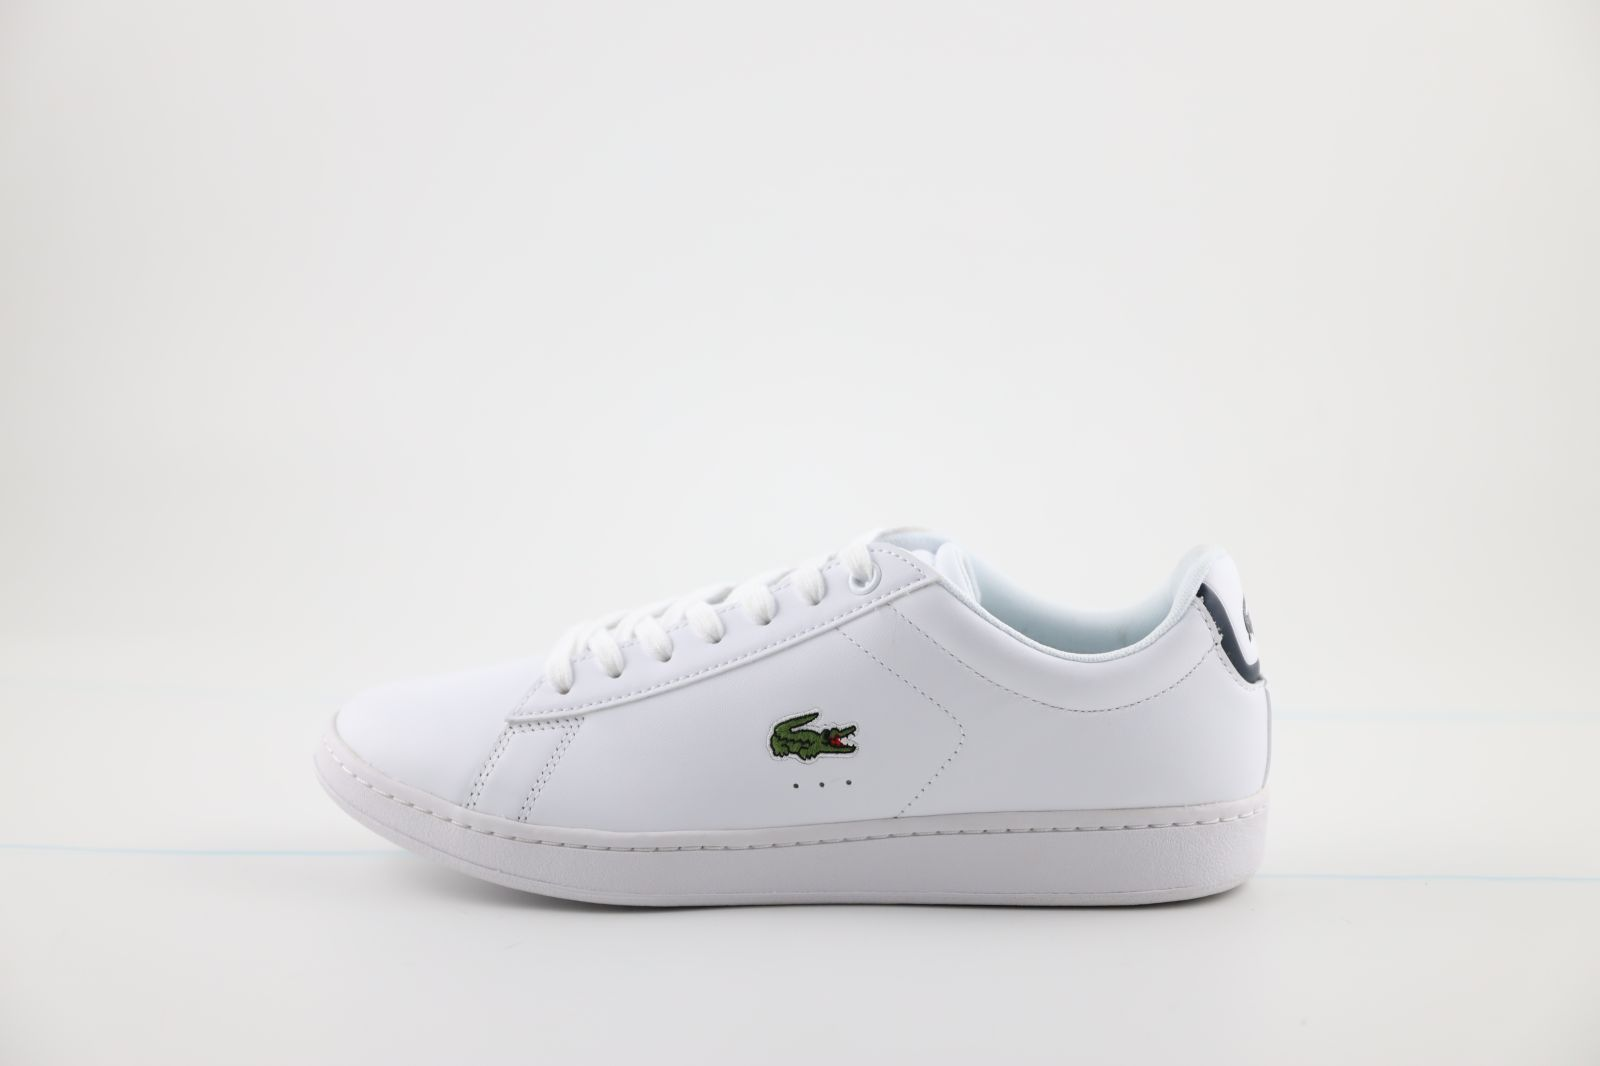 Lacoste Basket Blanc hommes (Carnaby Evo - Carnaby Evo) - Marques à Suivre